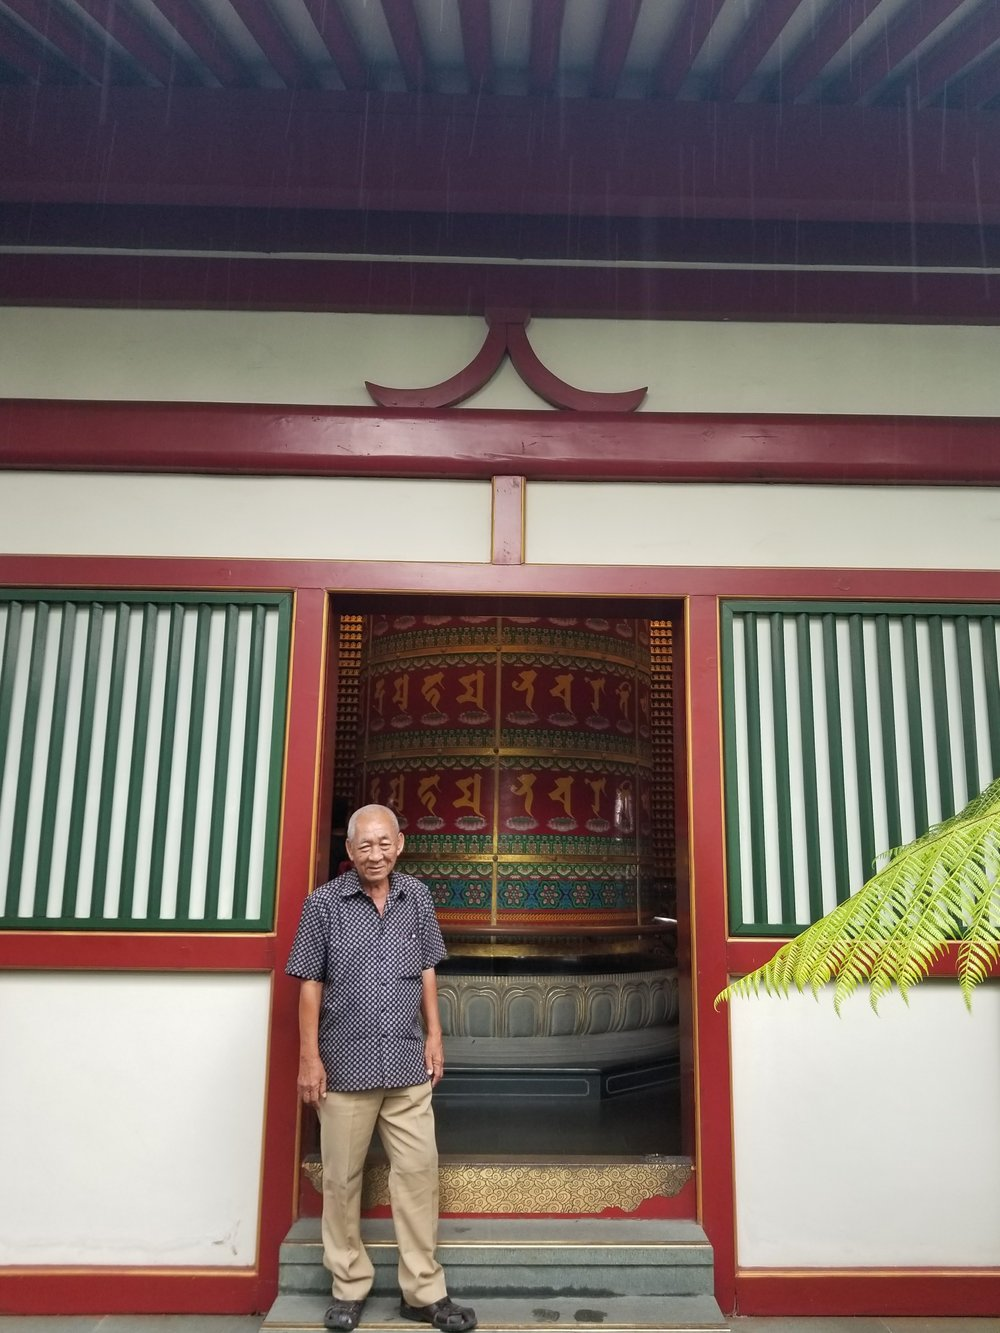 Bernard, the man who took me on a tour around the Buddhist Temple.